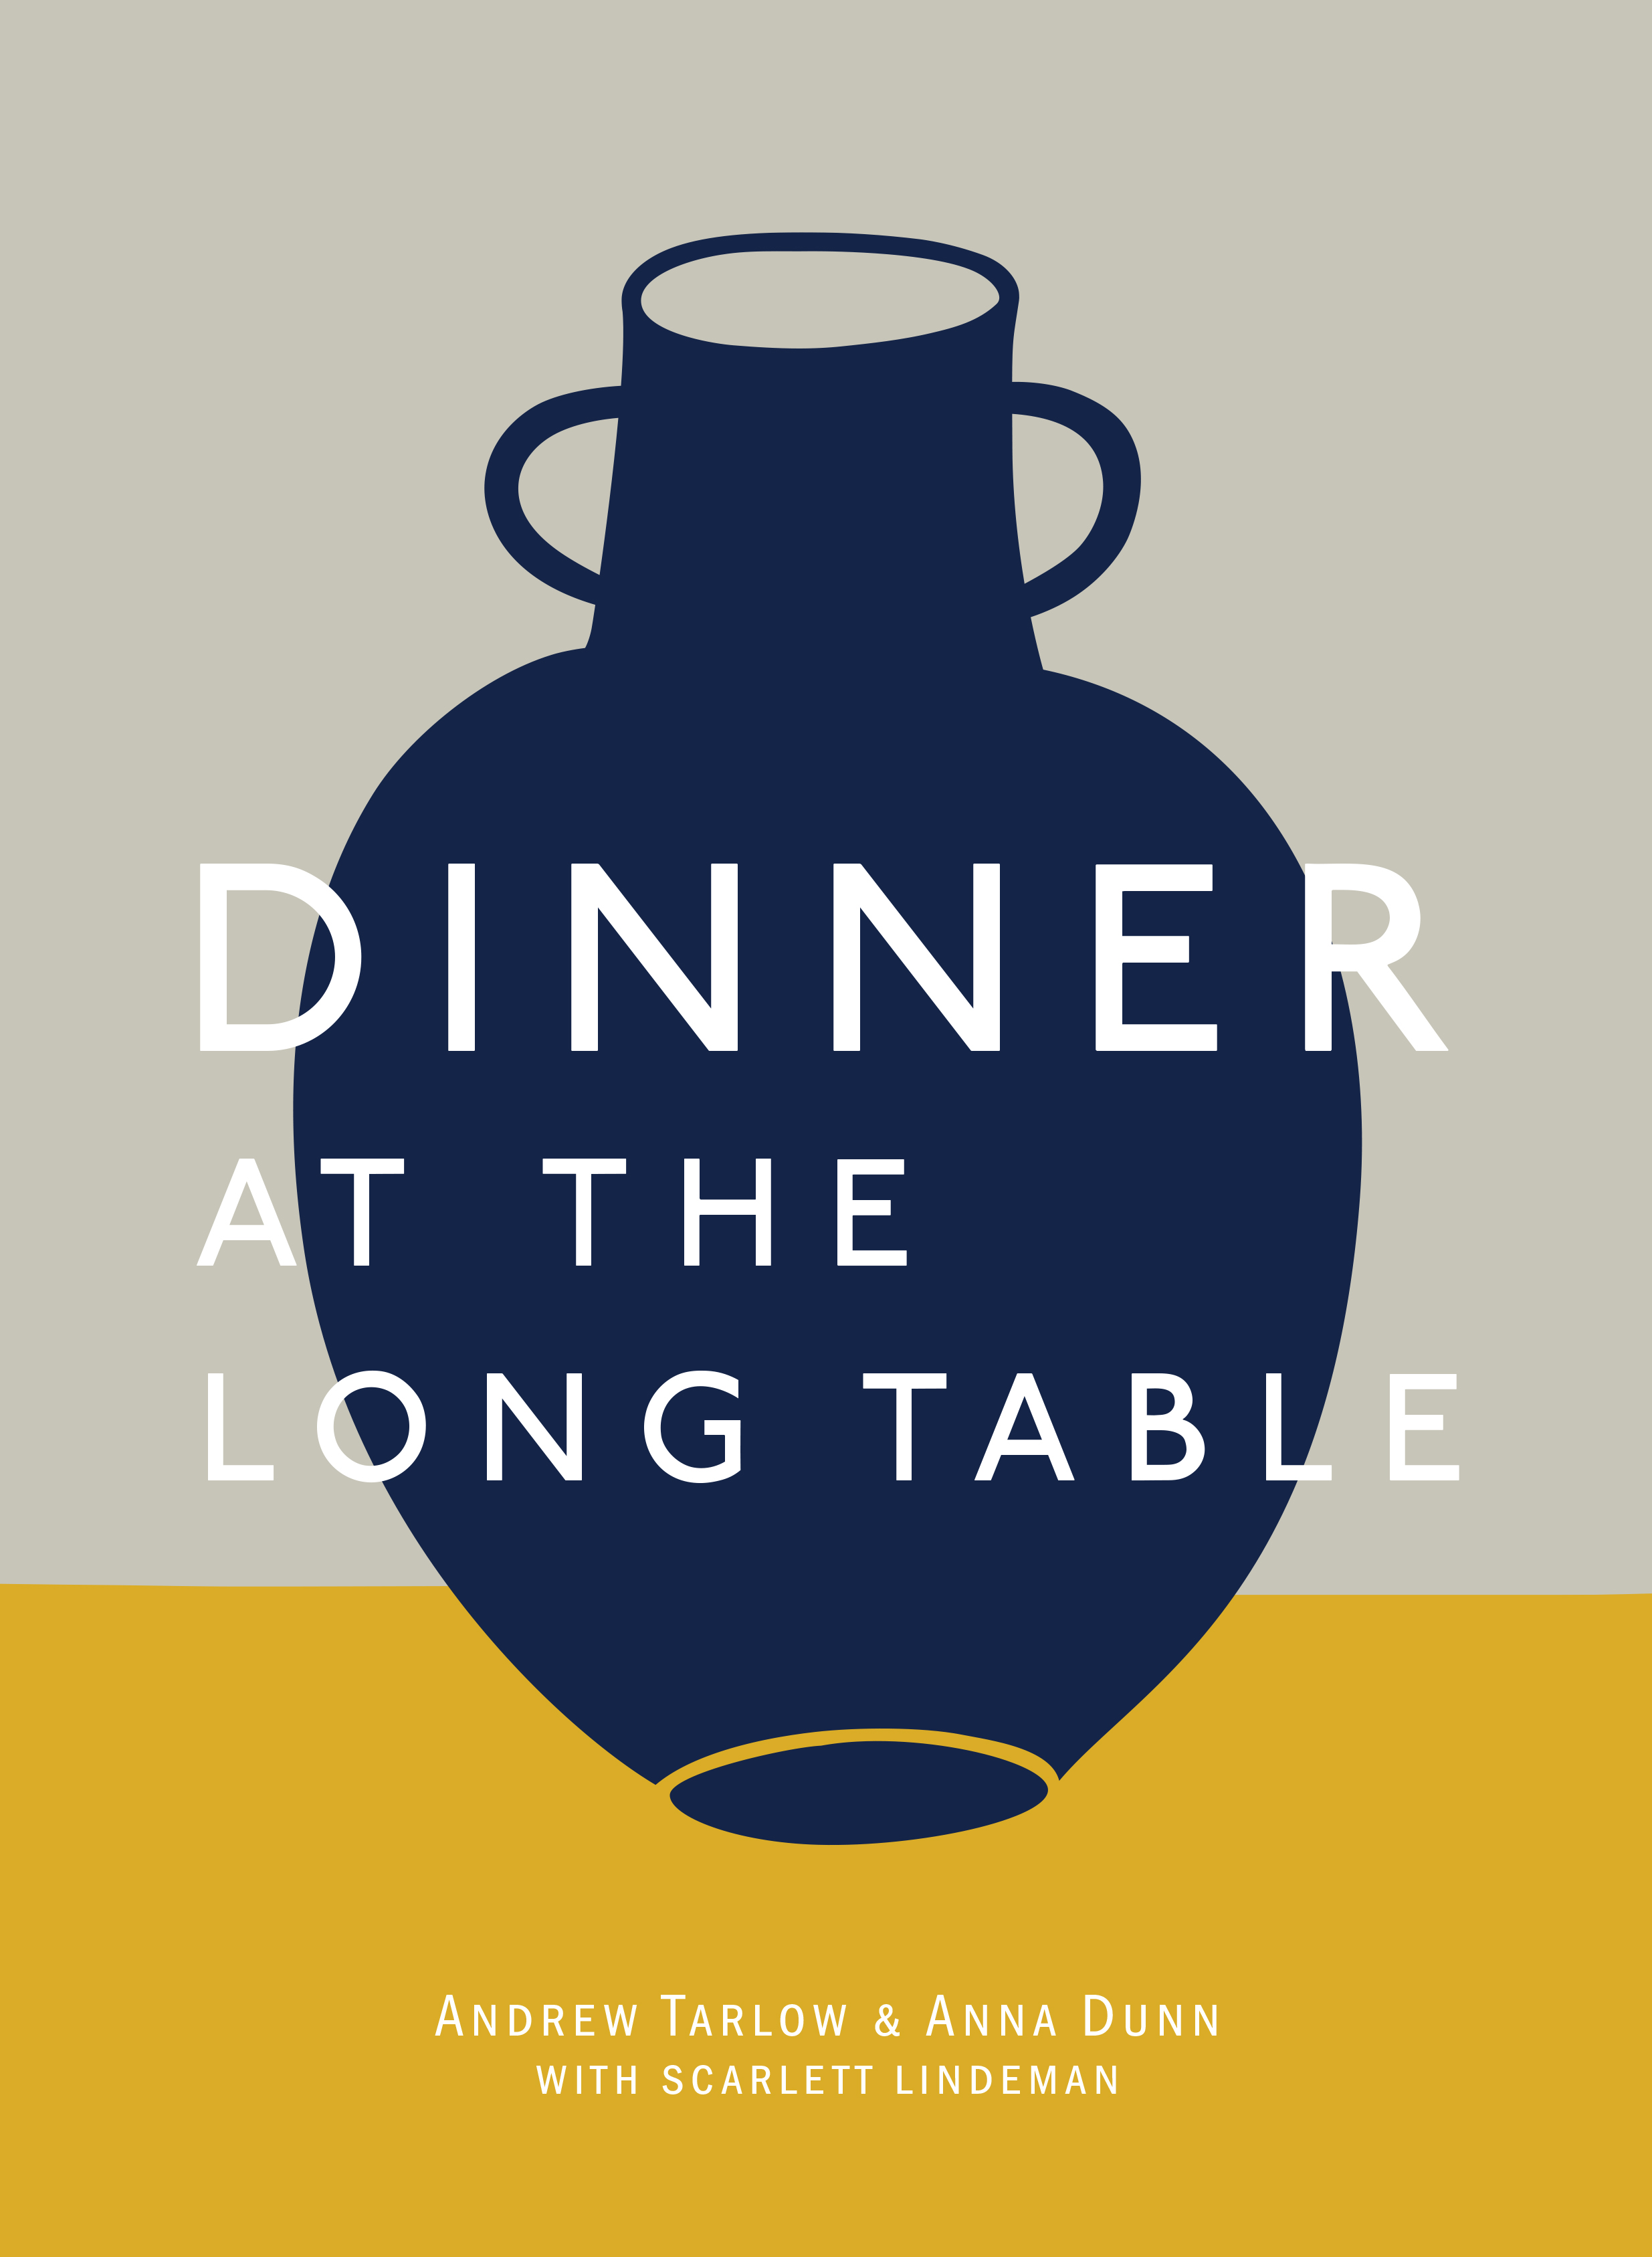 Read. Don't follow   recipes  . Cook with fire. Pick wild herbs.    Talk    to ghosts.    Fail    at aioli. Turn the    clocks    back. Turn the clocks around.      Dinner at the  Long Table ,     the debut cookbook of Brooklyn restaurateur Andrew Tarlow and Diner Journal editor Anna Dunn,    invites    you in very simple terms to participate. The book is a collection of dinners inspired by celebrations repeated over the years at the restaurants,as well as at home, with a focus on making food together for as many people as you can gather, as well as menus inspired by some of our favorite books in the cookbook compendium and beyond. Make a list, lose the list, remember what you've forgotten. Set the table. Listen to the music your friends make. Cook until you understand. Cook to keep the house warm.